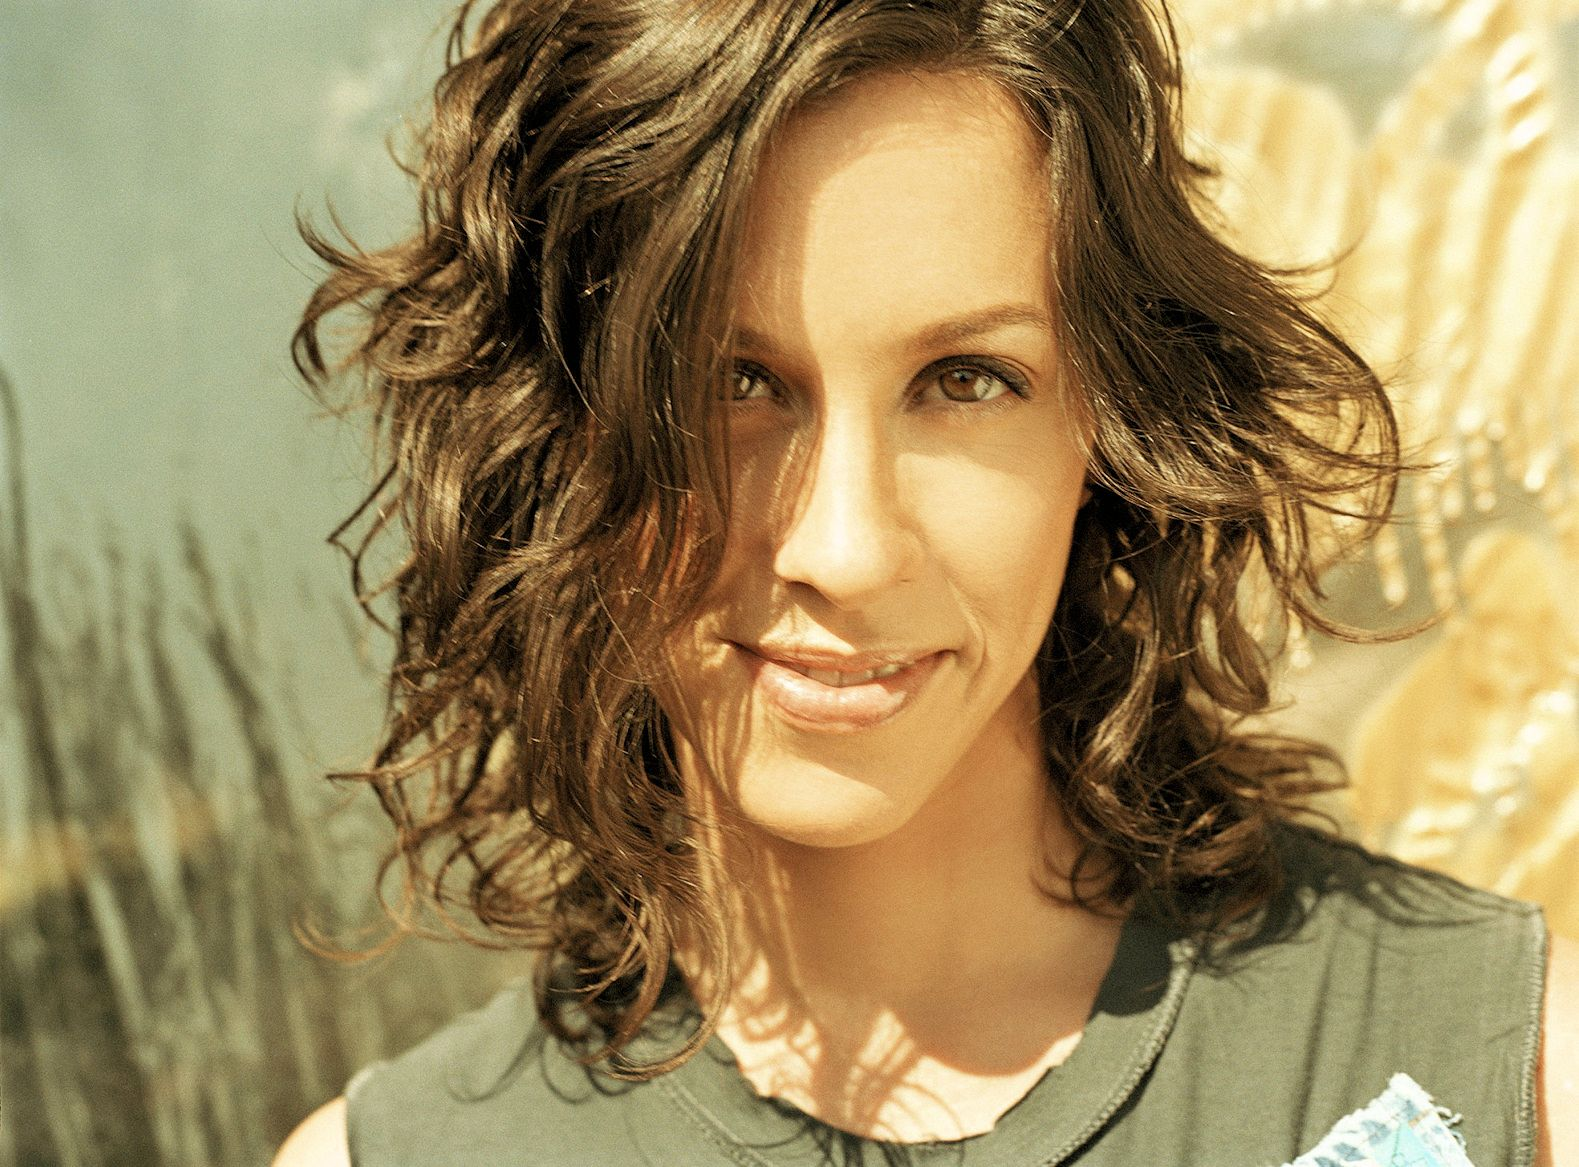 Alanis morissette so unsexy meaning of dreams